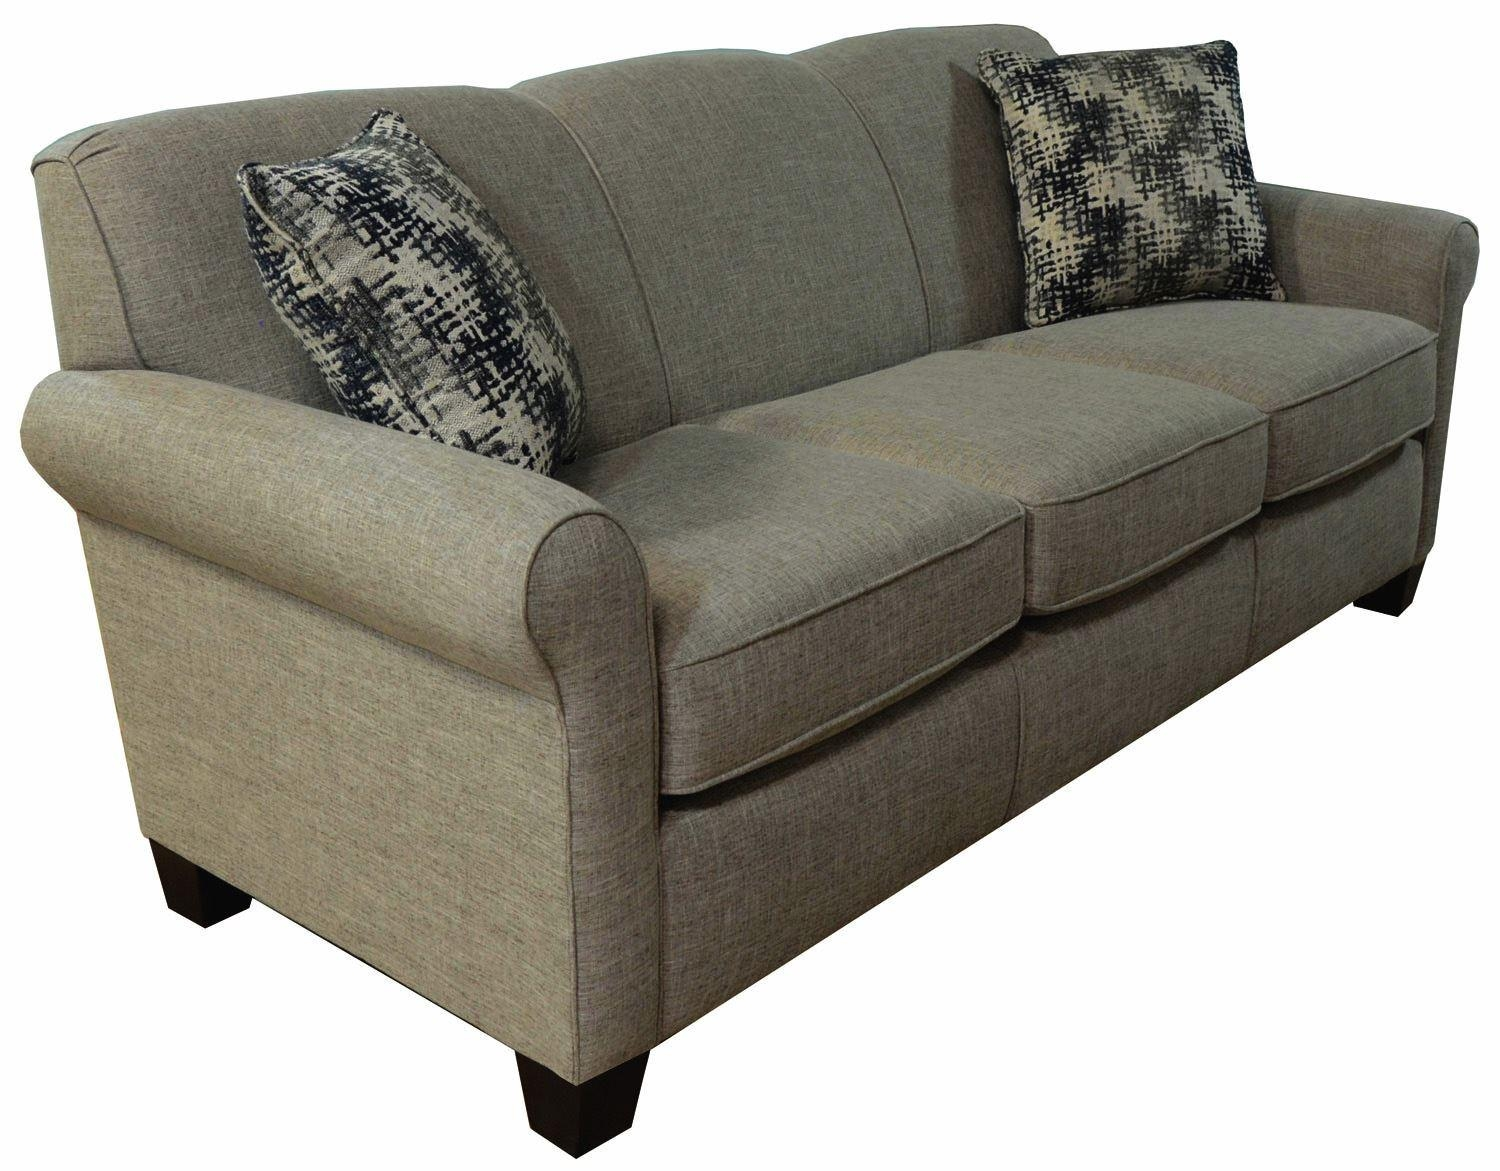 Newport Sofa, Frontroom Express – Frontroom Furnishings Regarding Newport Sofas (View 13 of 20)